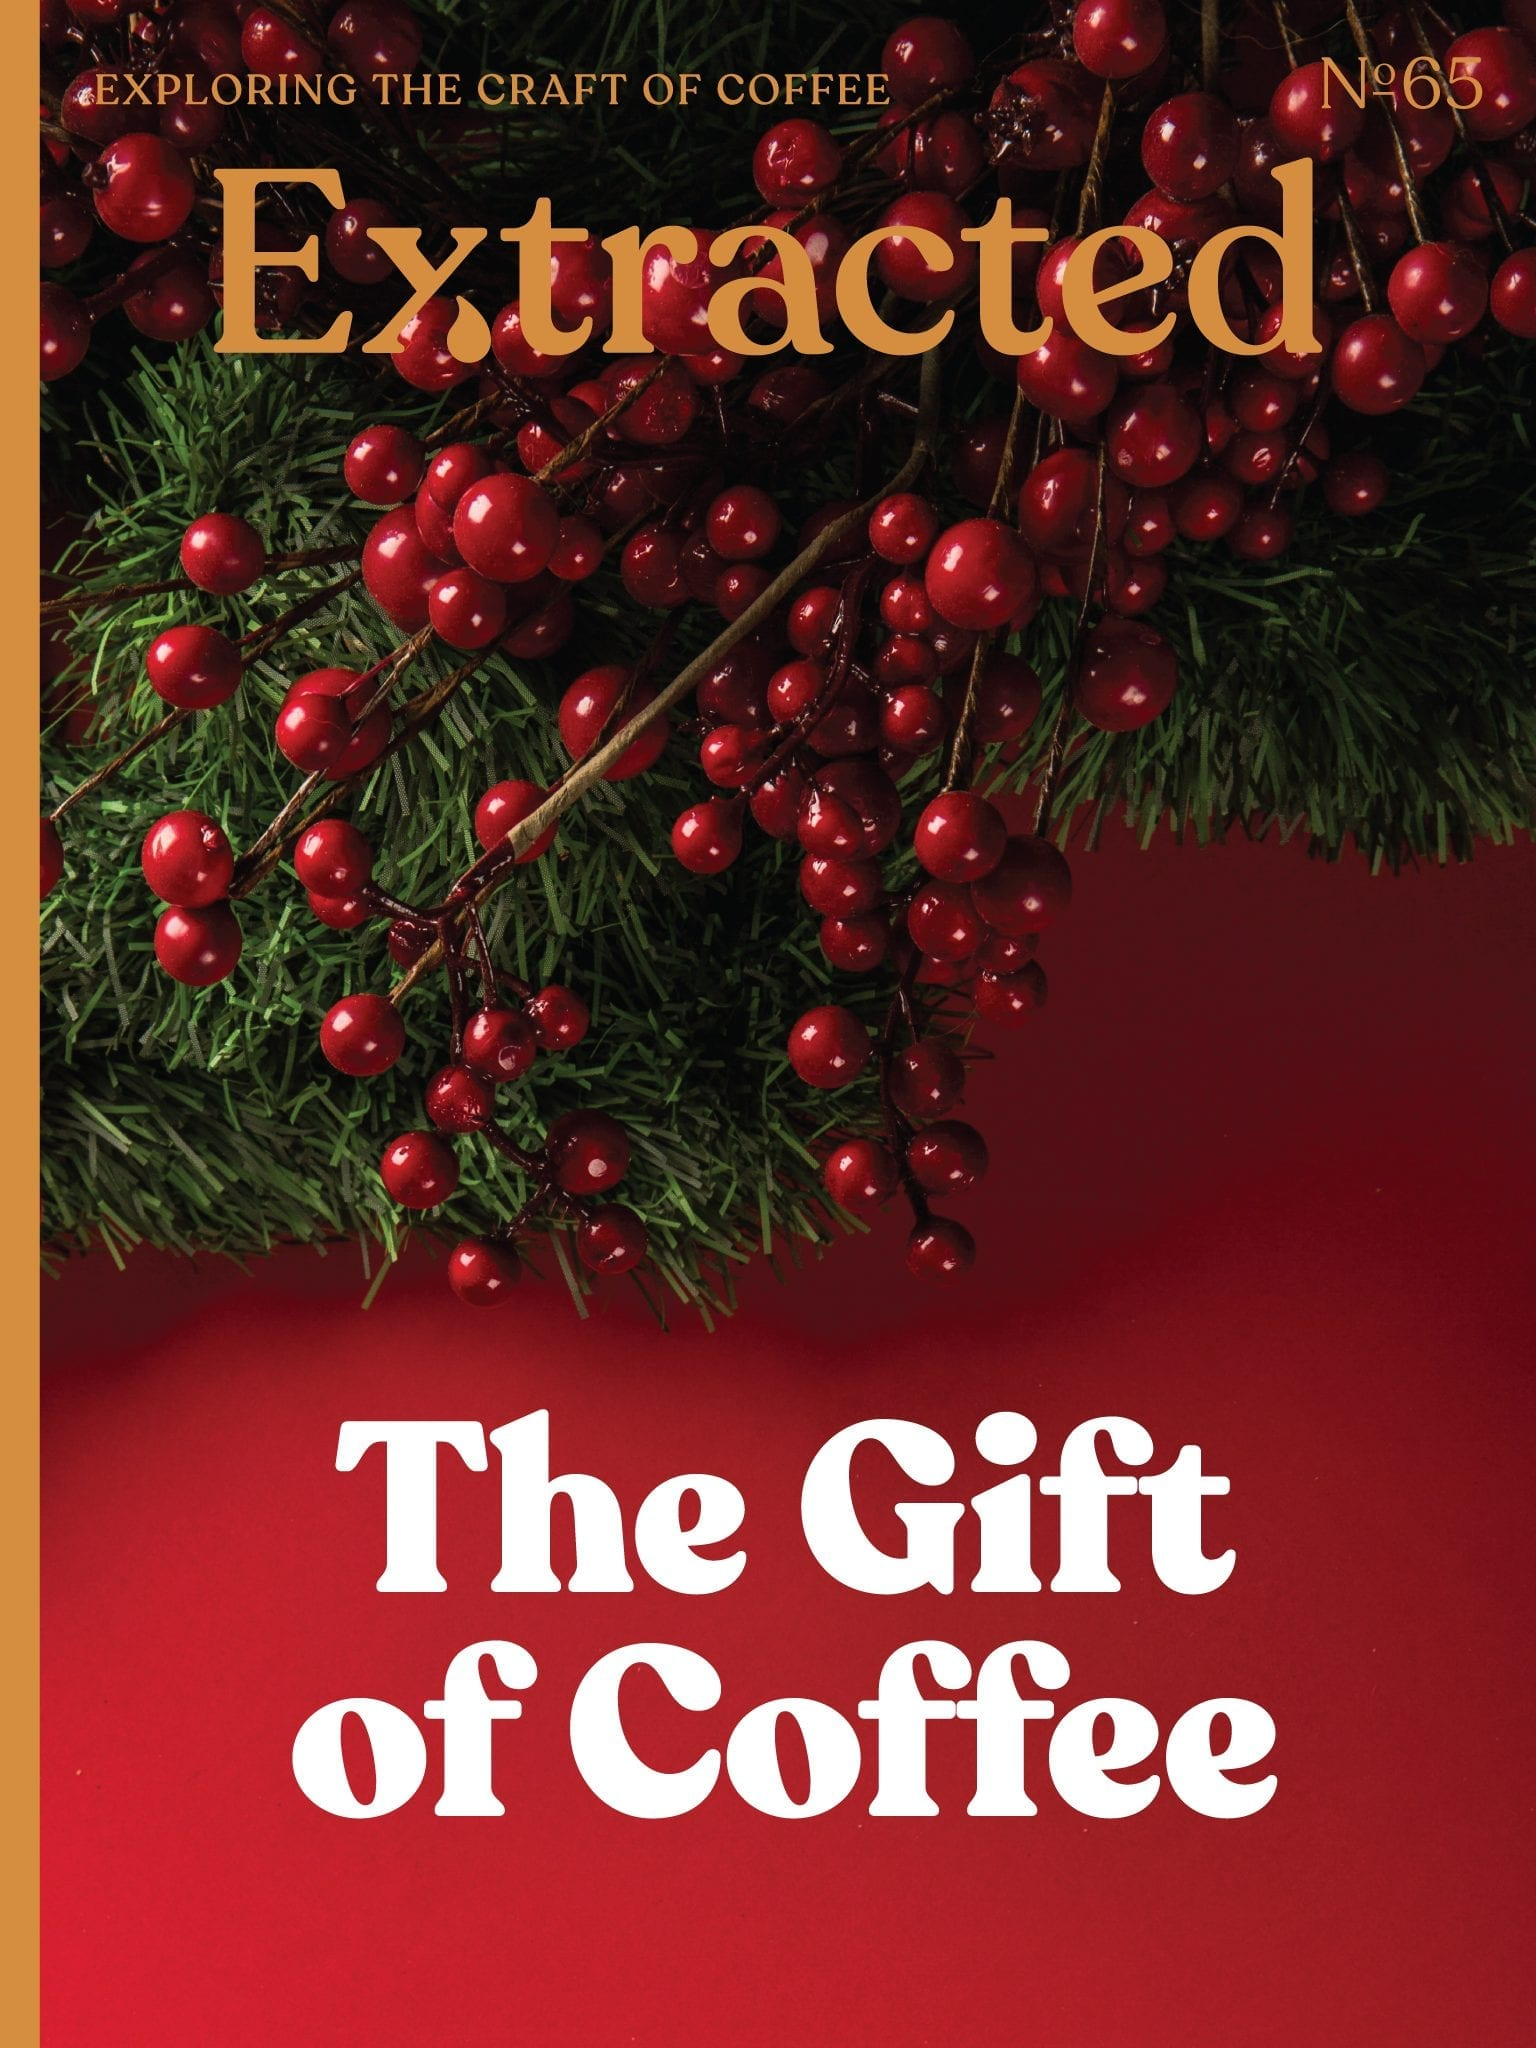 The Gift of Coffee - Issue 65 Extracted Magazine - Coffee Magazine